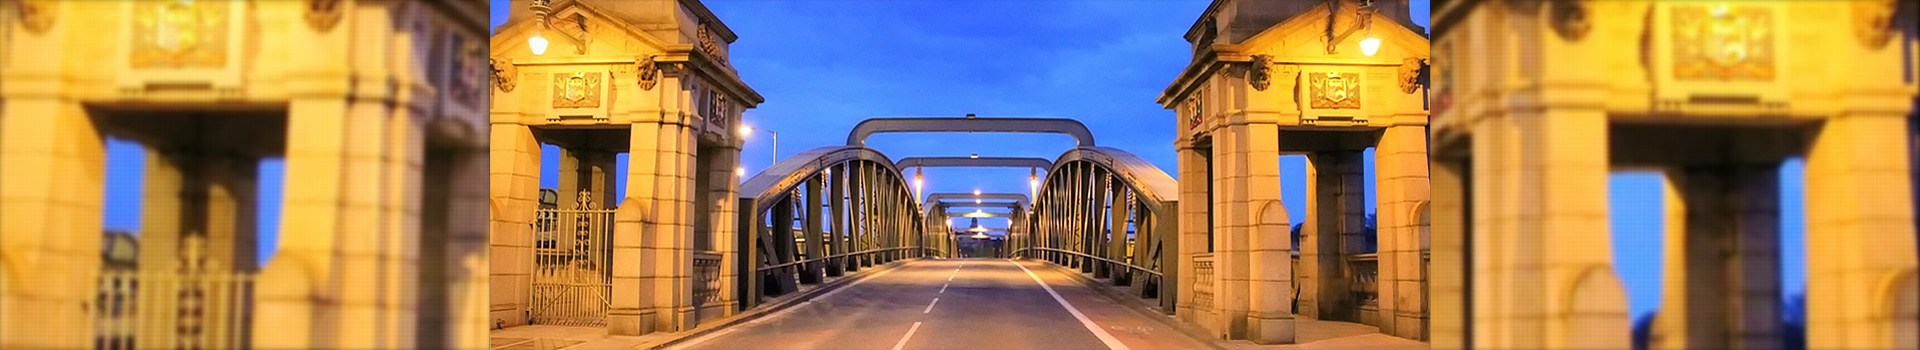 Bridge_At_Night_Banner